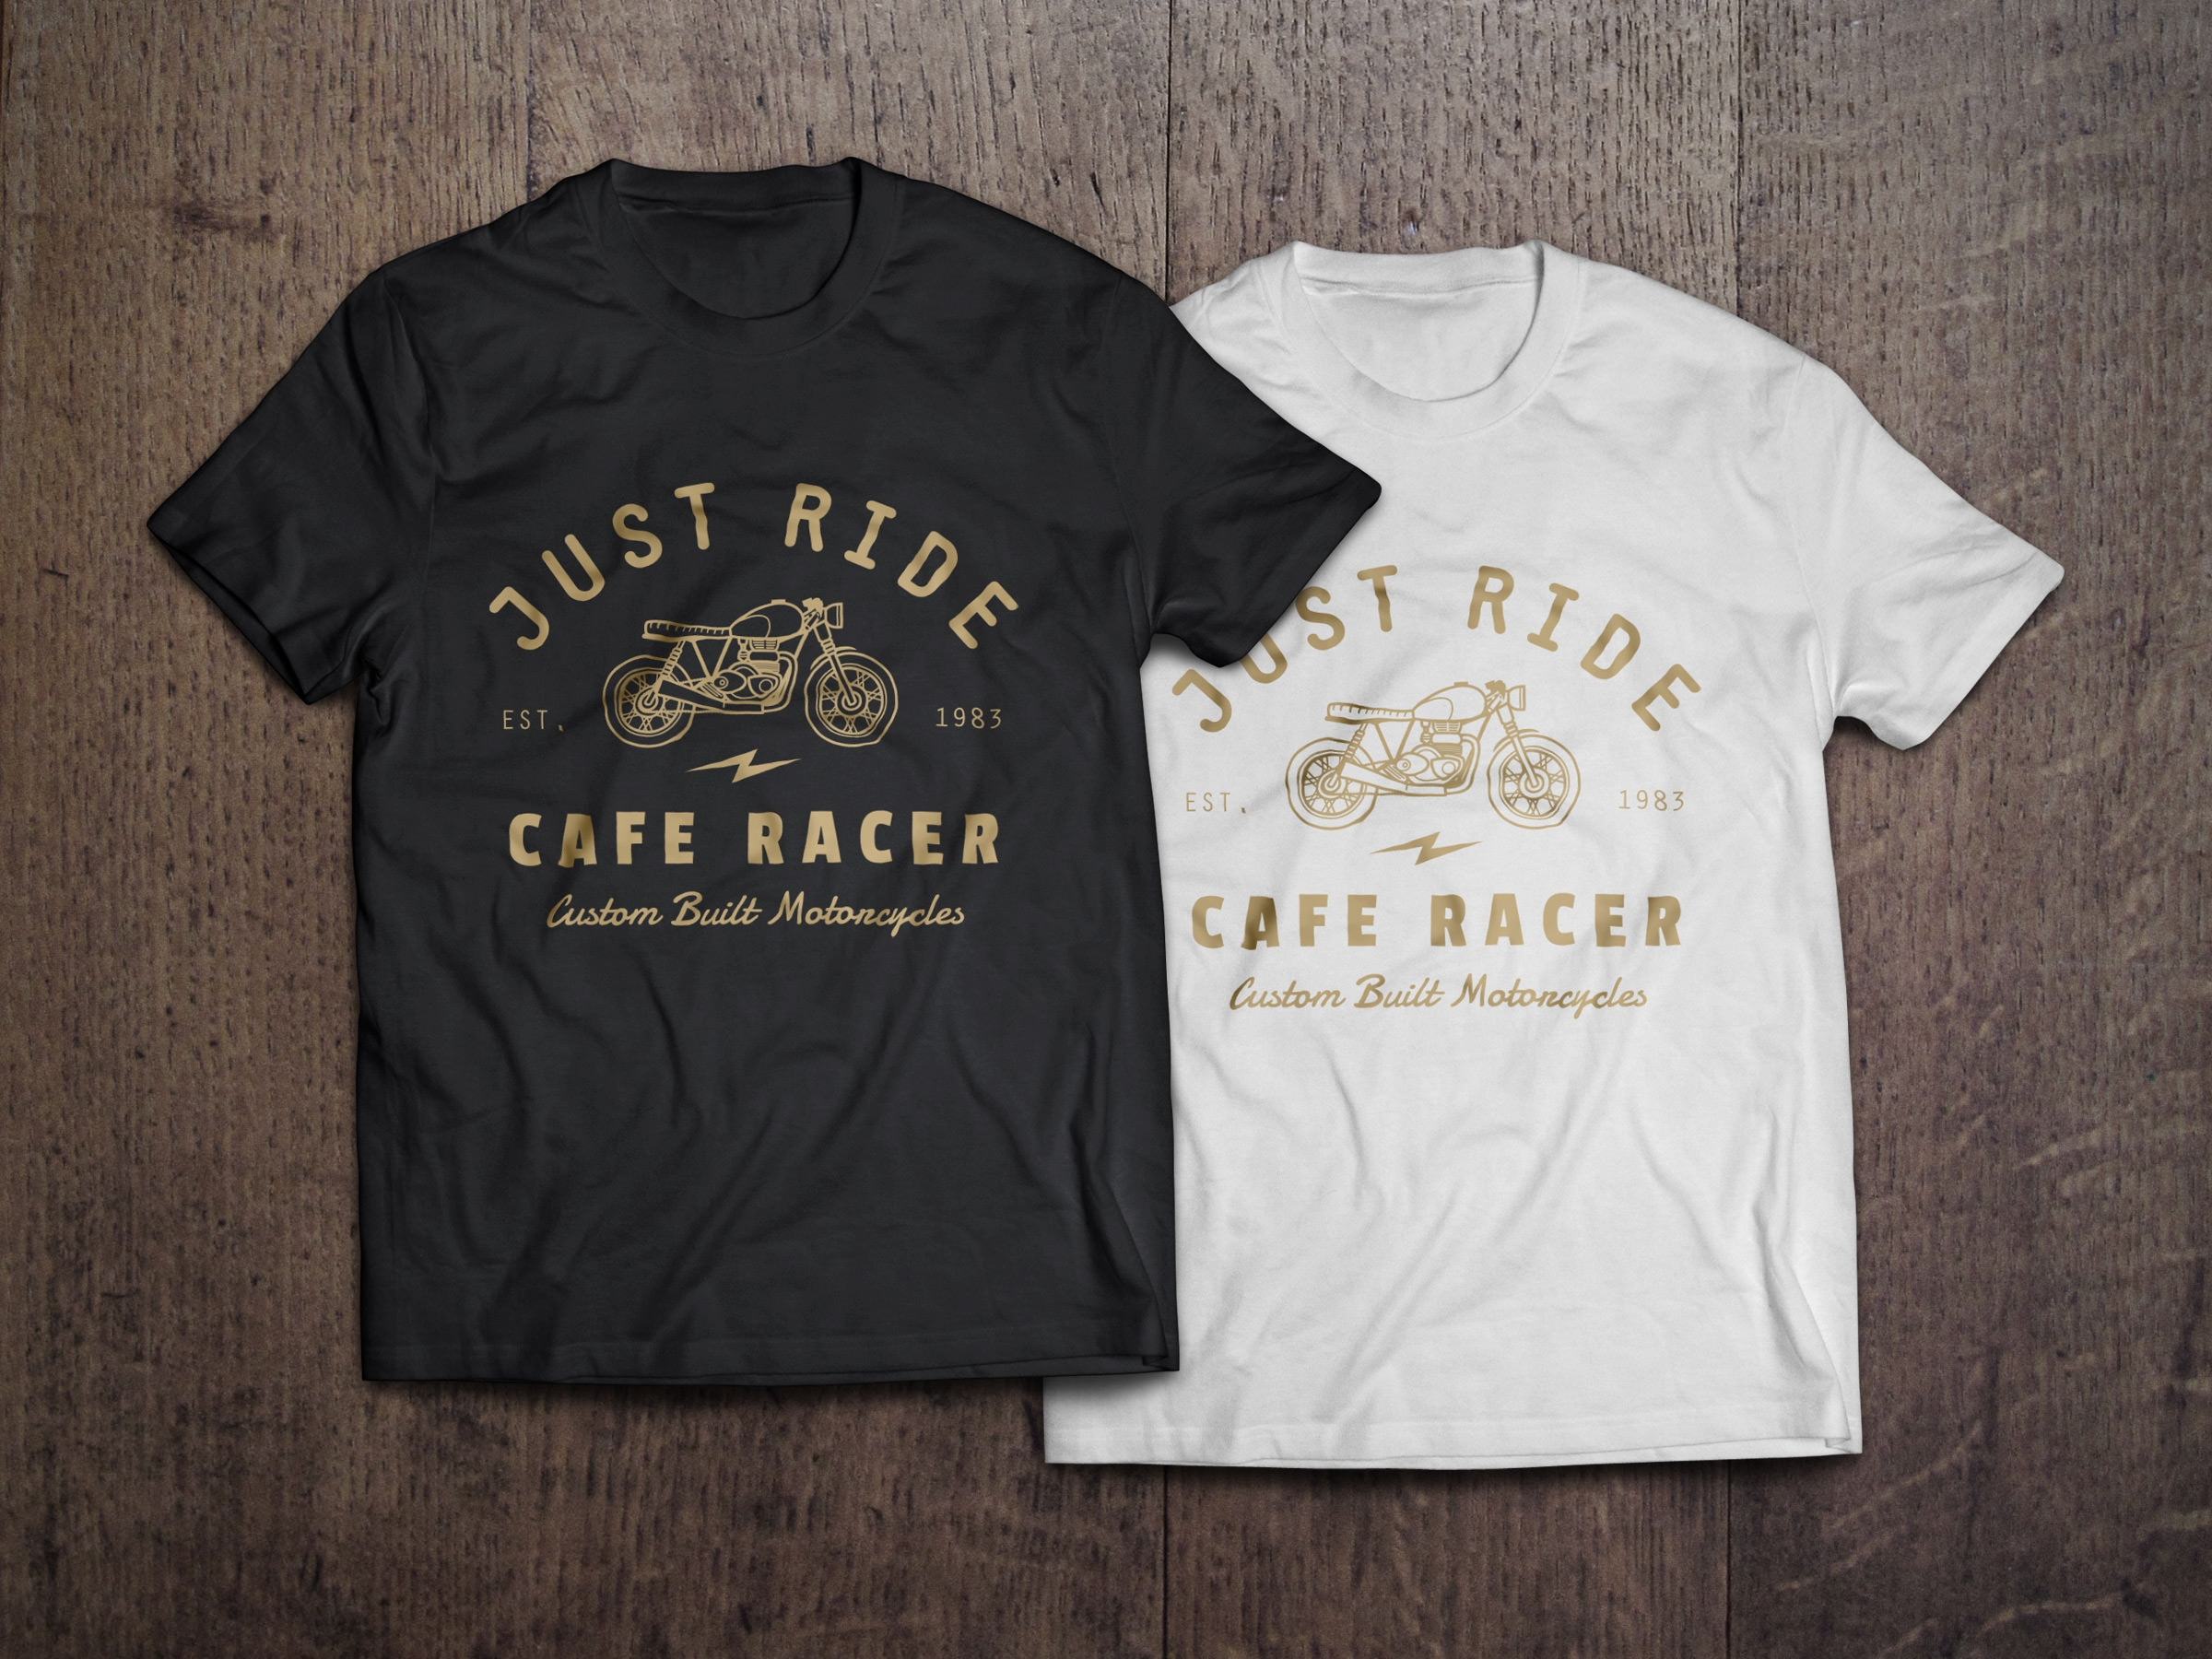 GRAPHICBURGER T-SHIRT MOCKUP PSD